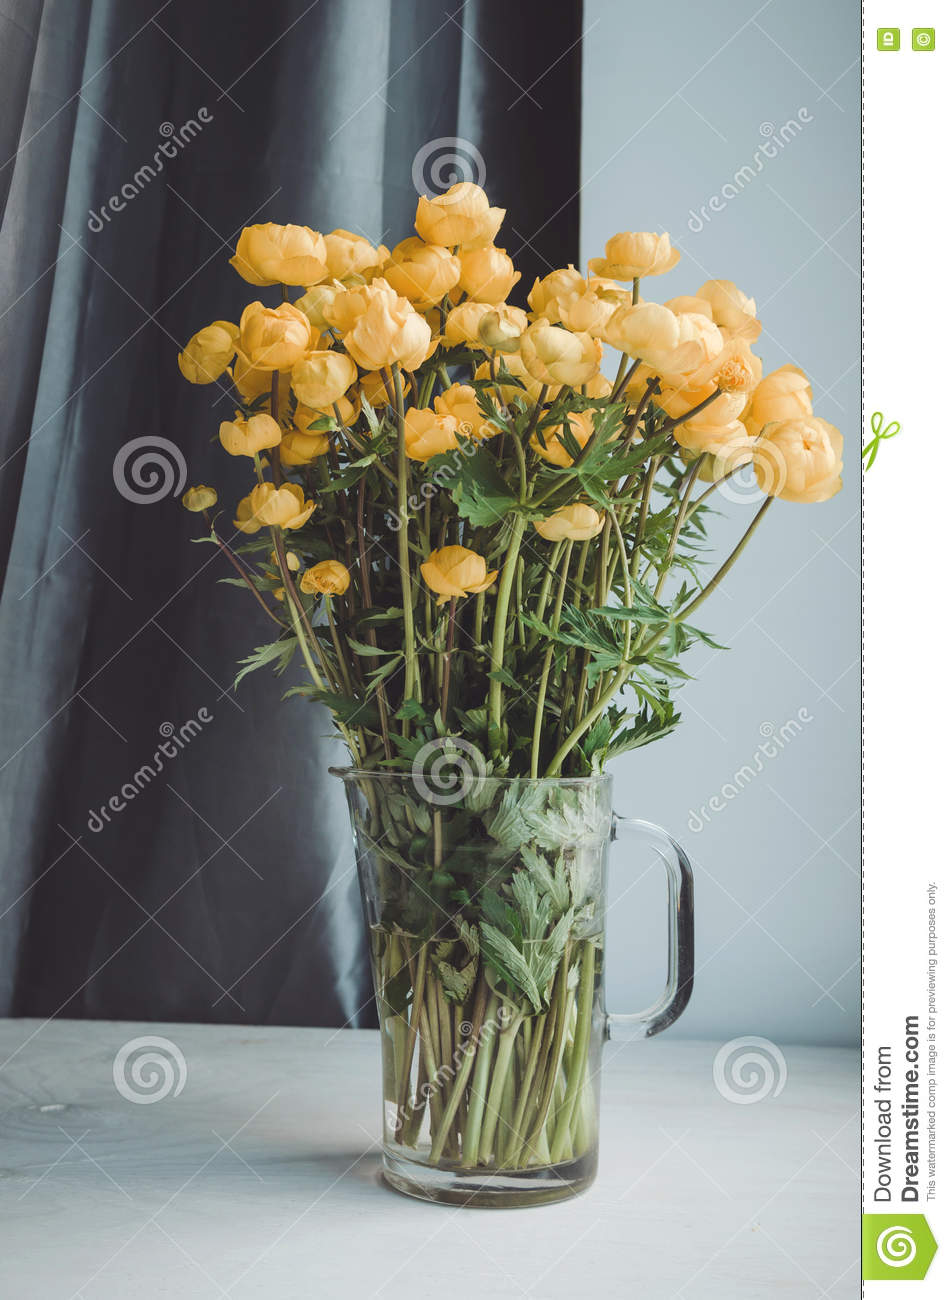 Fresh bunch of yellow summer flowers in glass vase on a white fresh bunch of yellow summer flowers in glass vase on a white windowsill background cozy home rustic style decor still reviewsmspy